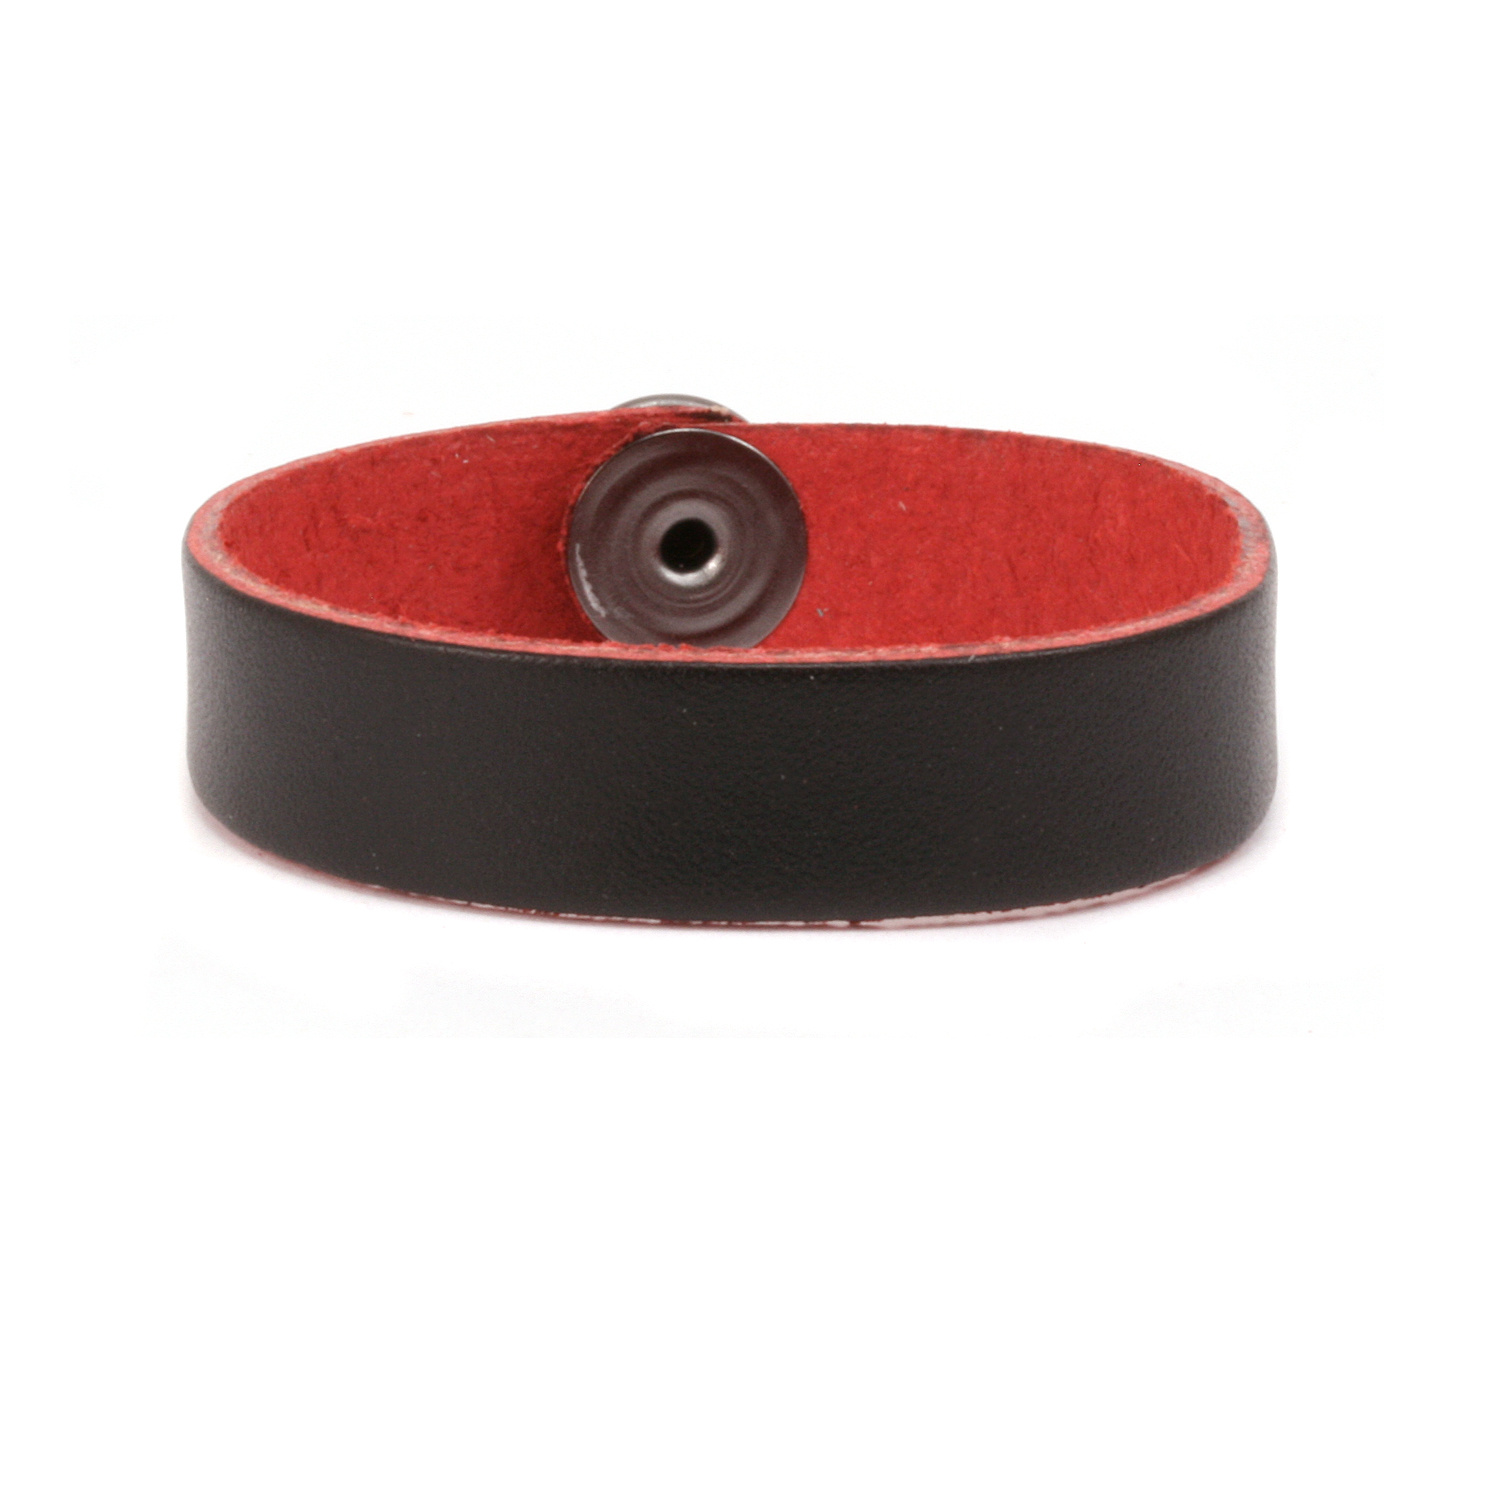 "Leather Bracelet 1/2"" Extra Small, Black/Red"